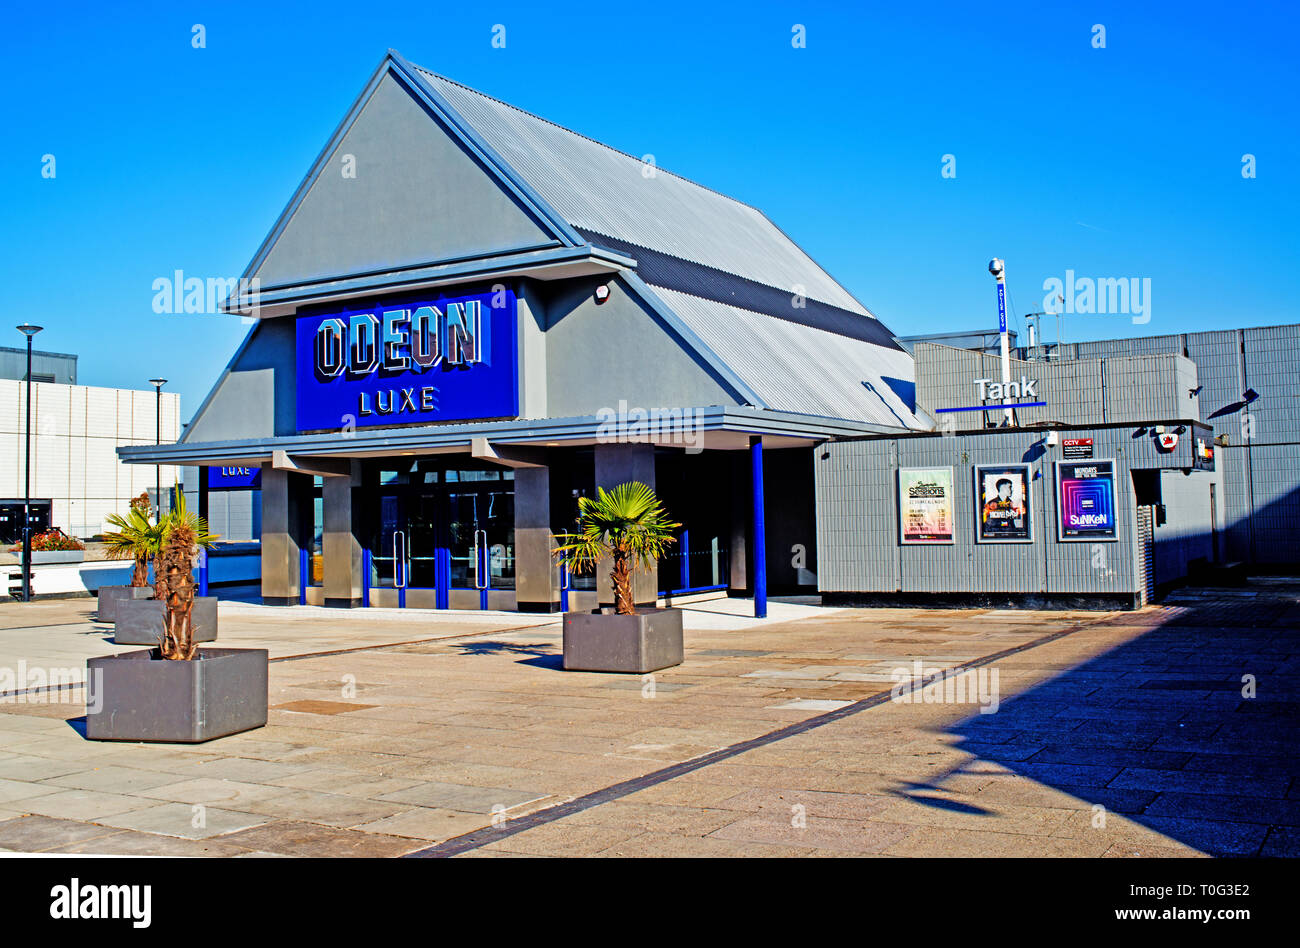 Shefffield, Odeon Luxe, England - Stock Image